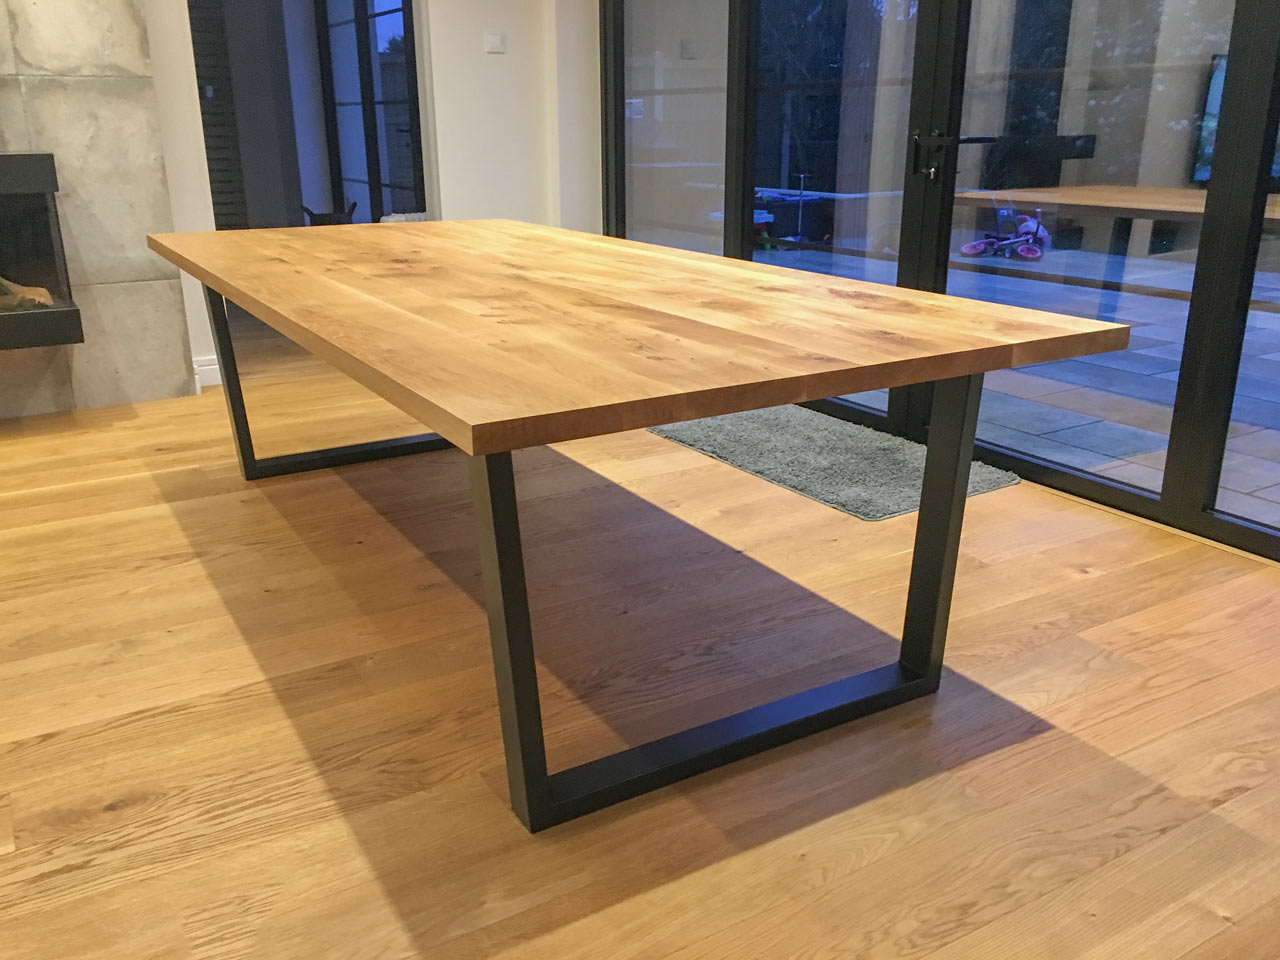 abacus-tables-project-896-pic-2